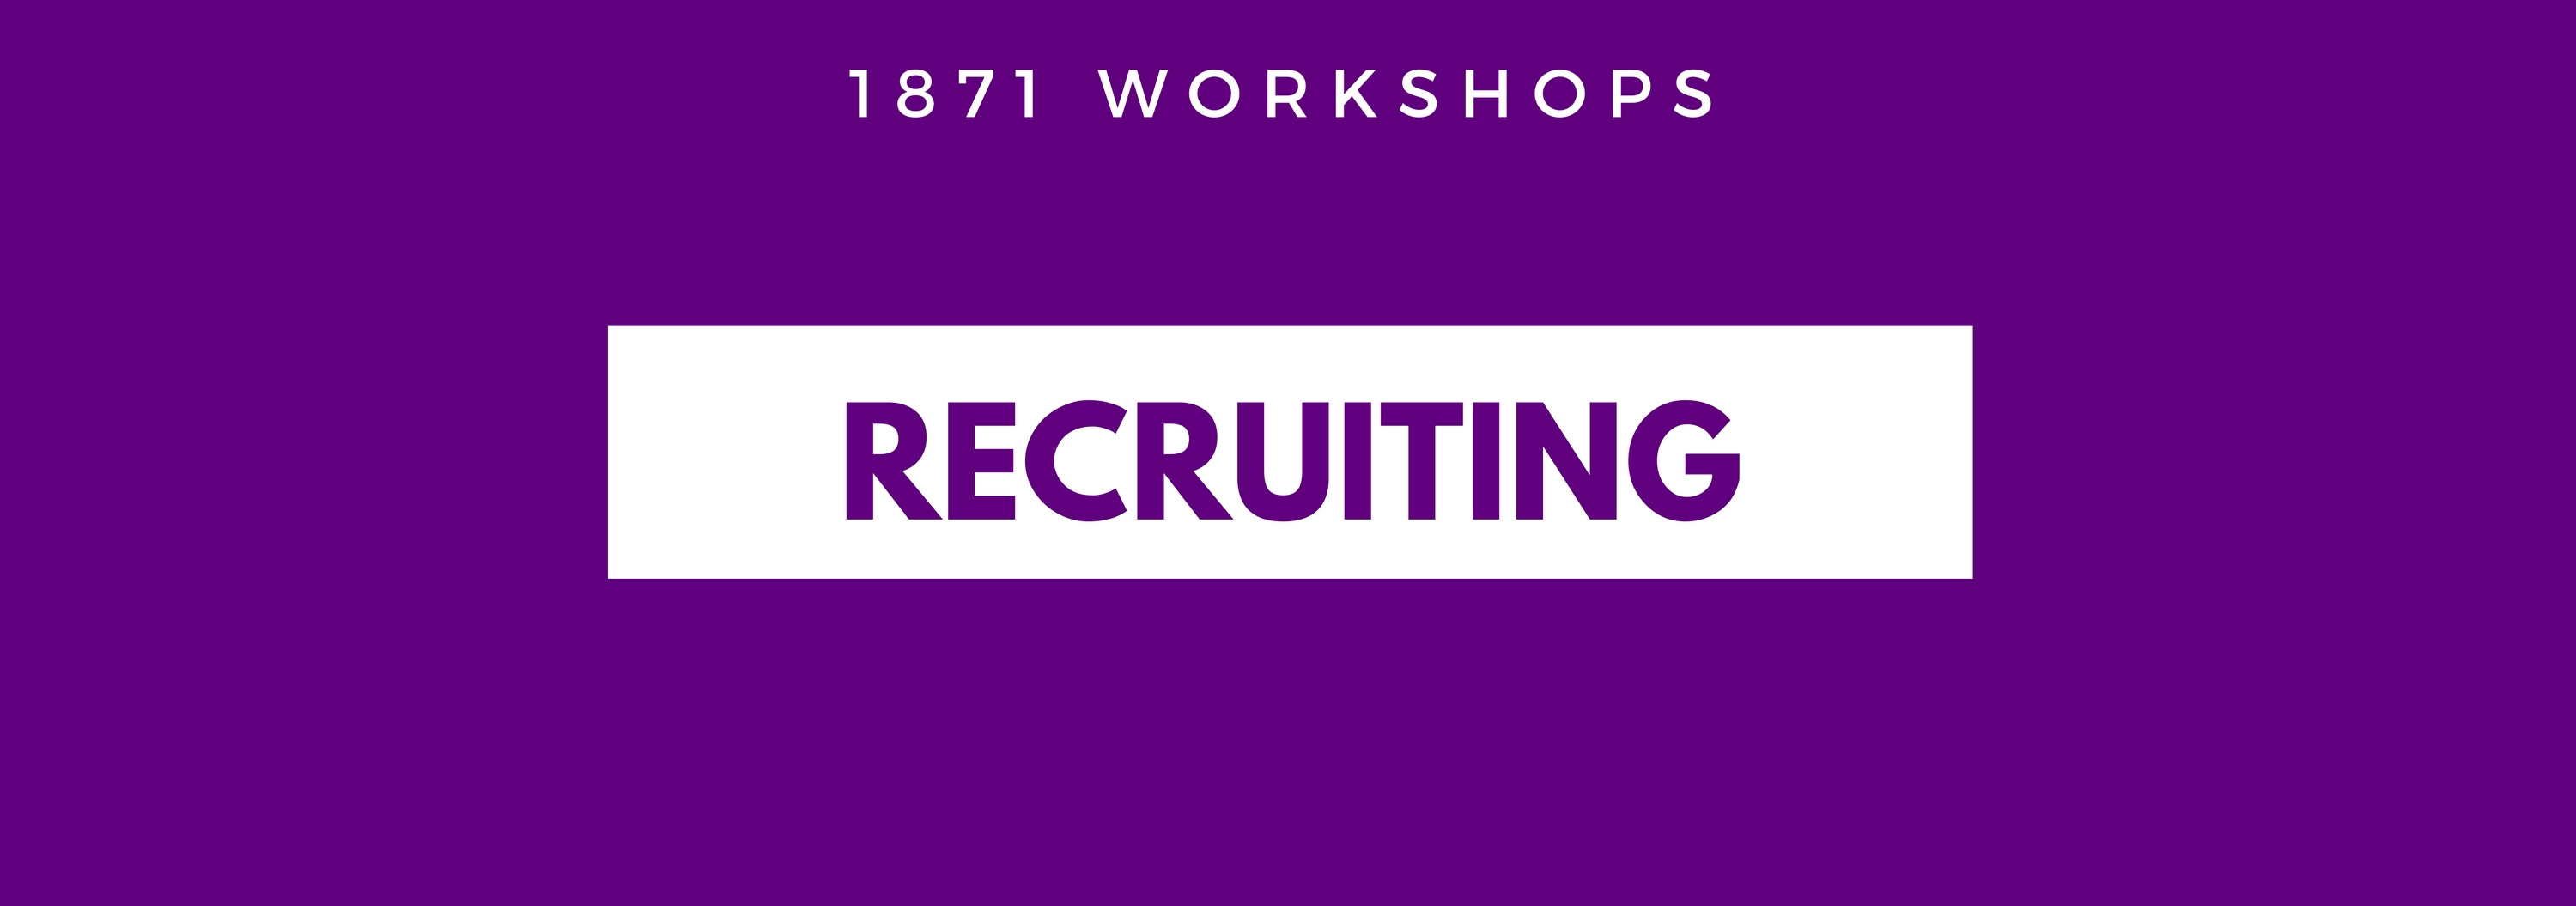 So You Need to Recruit a Team: Understanding 1871's Recruiting Program